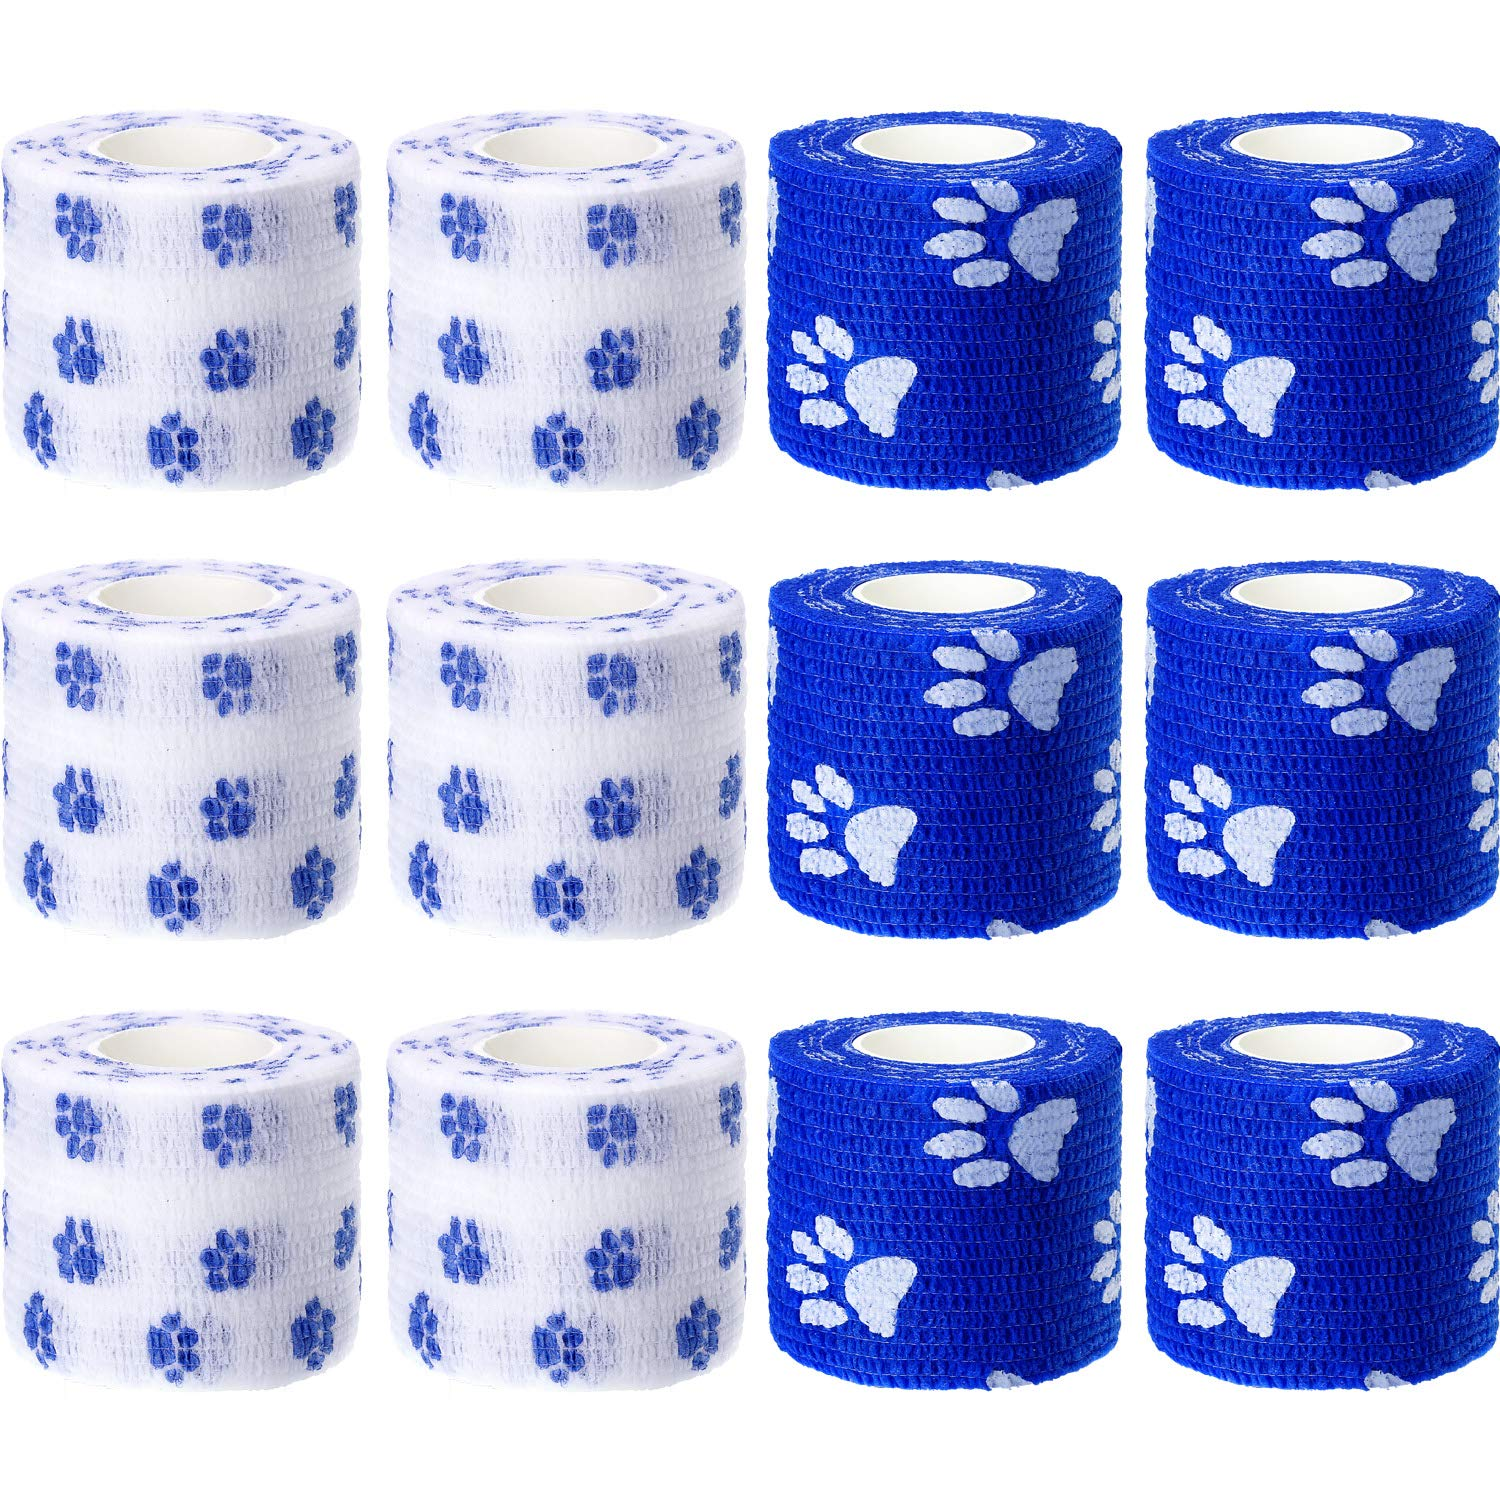 Pangda 12 Pieces Adhesive Bandage Wrap Stretch Self-Adherent Tape for Sports, Wrist, Ankle, 5 Yards Each (2 Inches, Blue and White)